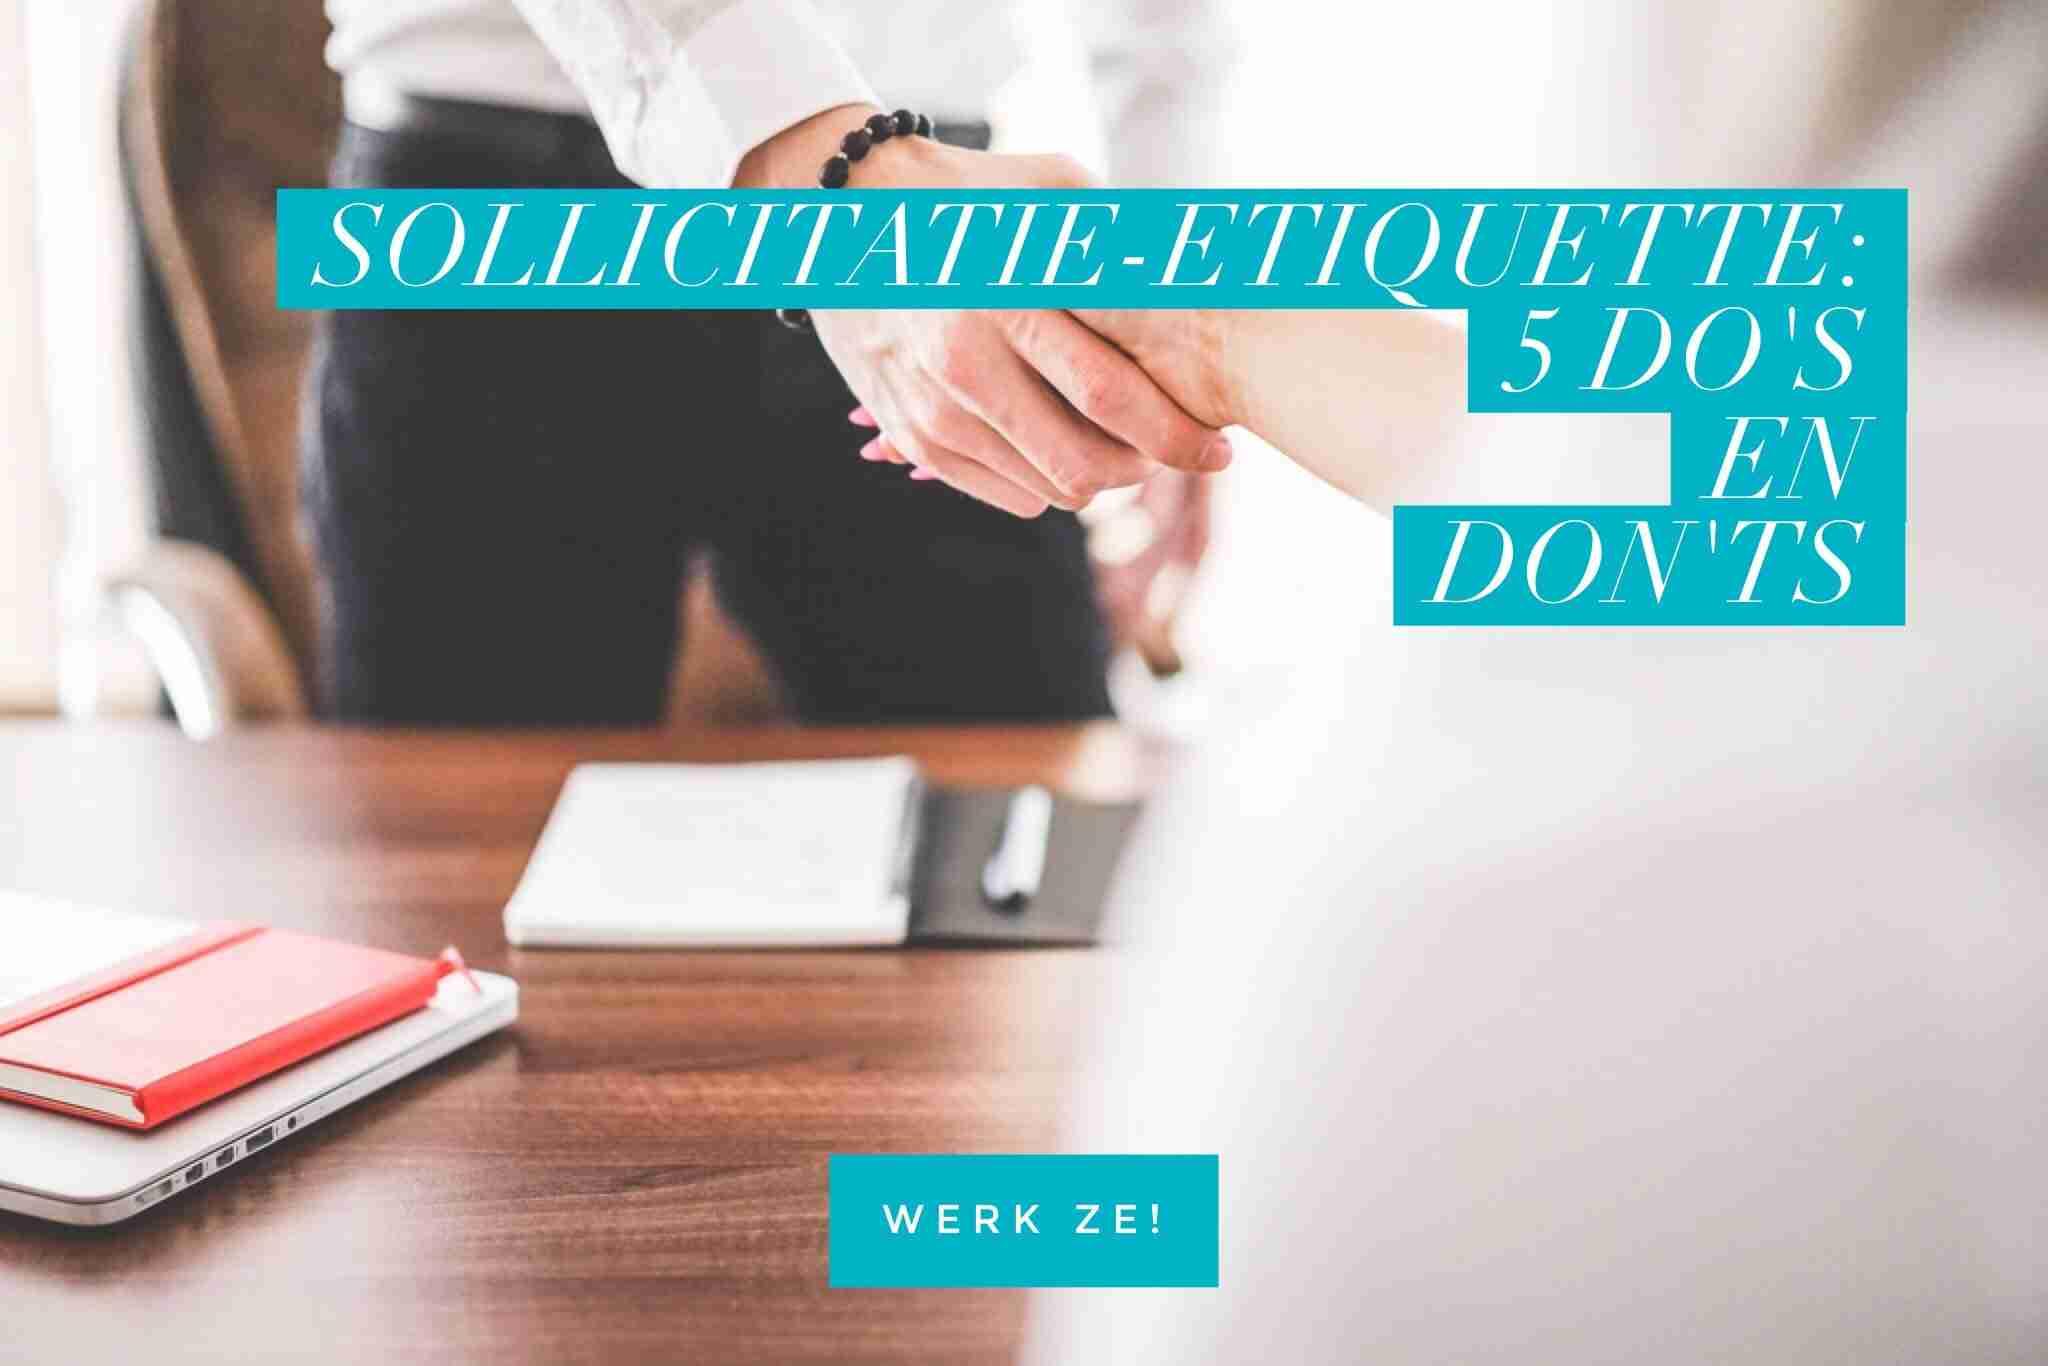 Sollicitatie-etiquette: 5 do's en don'ts